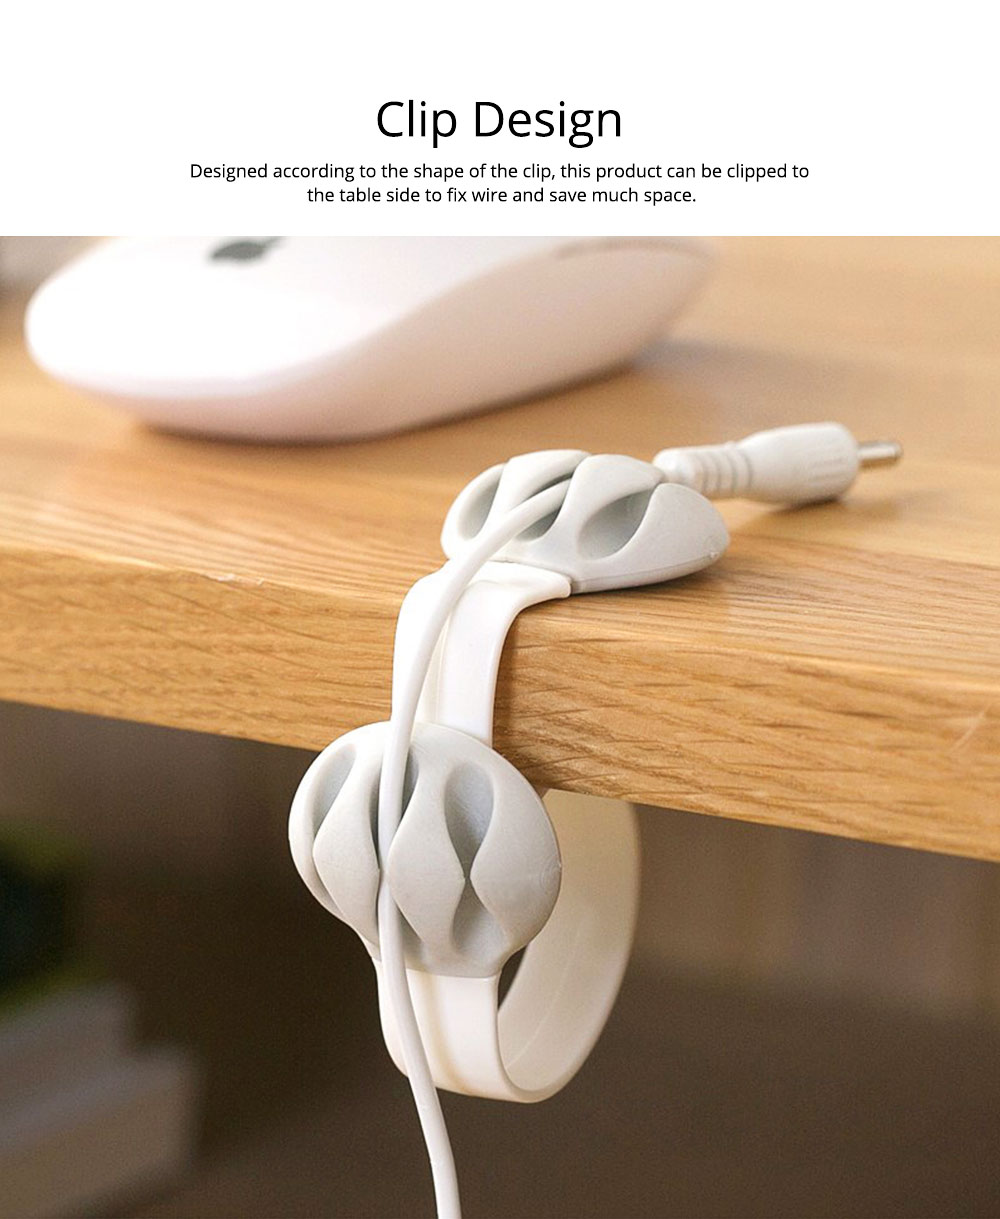 Silicone PP Plastic Deskside Retaining Clamp Wire Fixer Holder, Office Desktop Wire USB Charger Management Organizer Clip 4